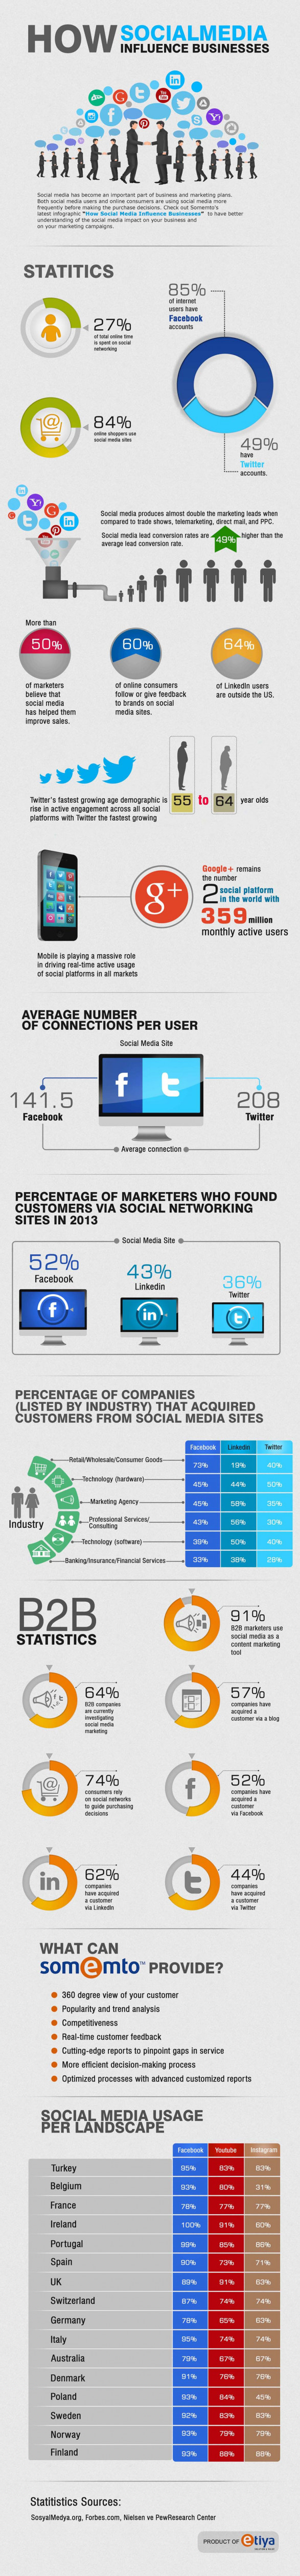 Social Media Influence on Businesses